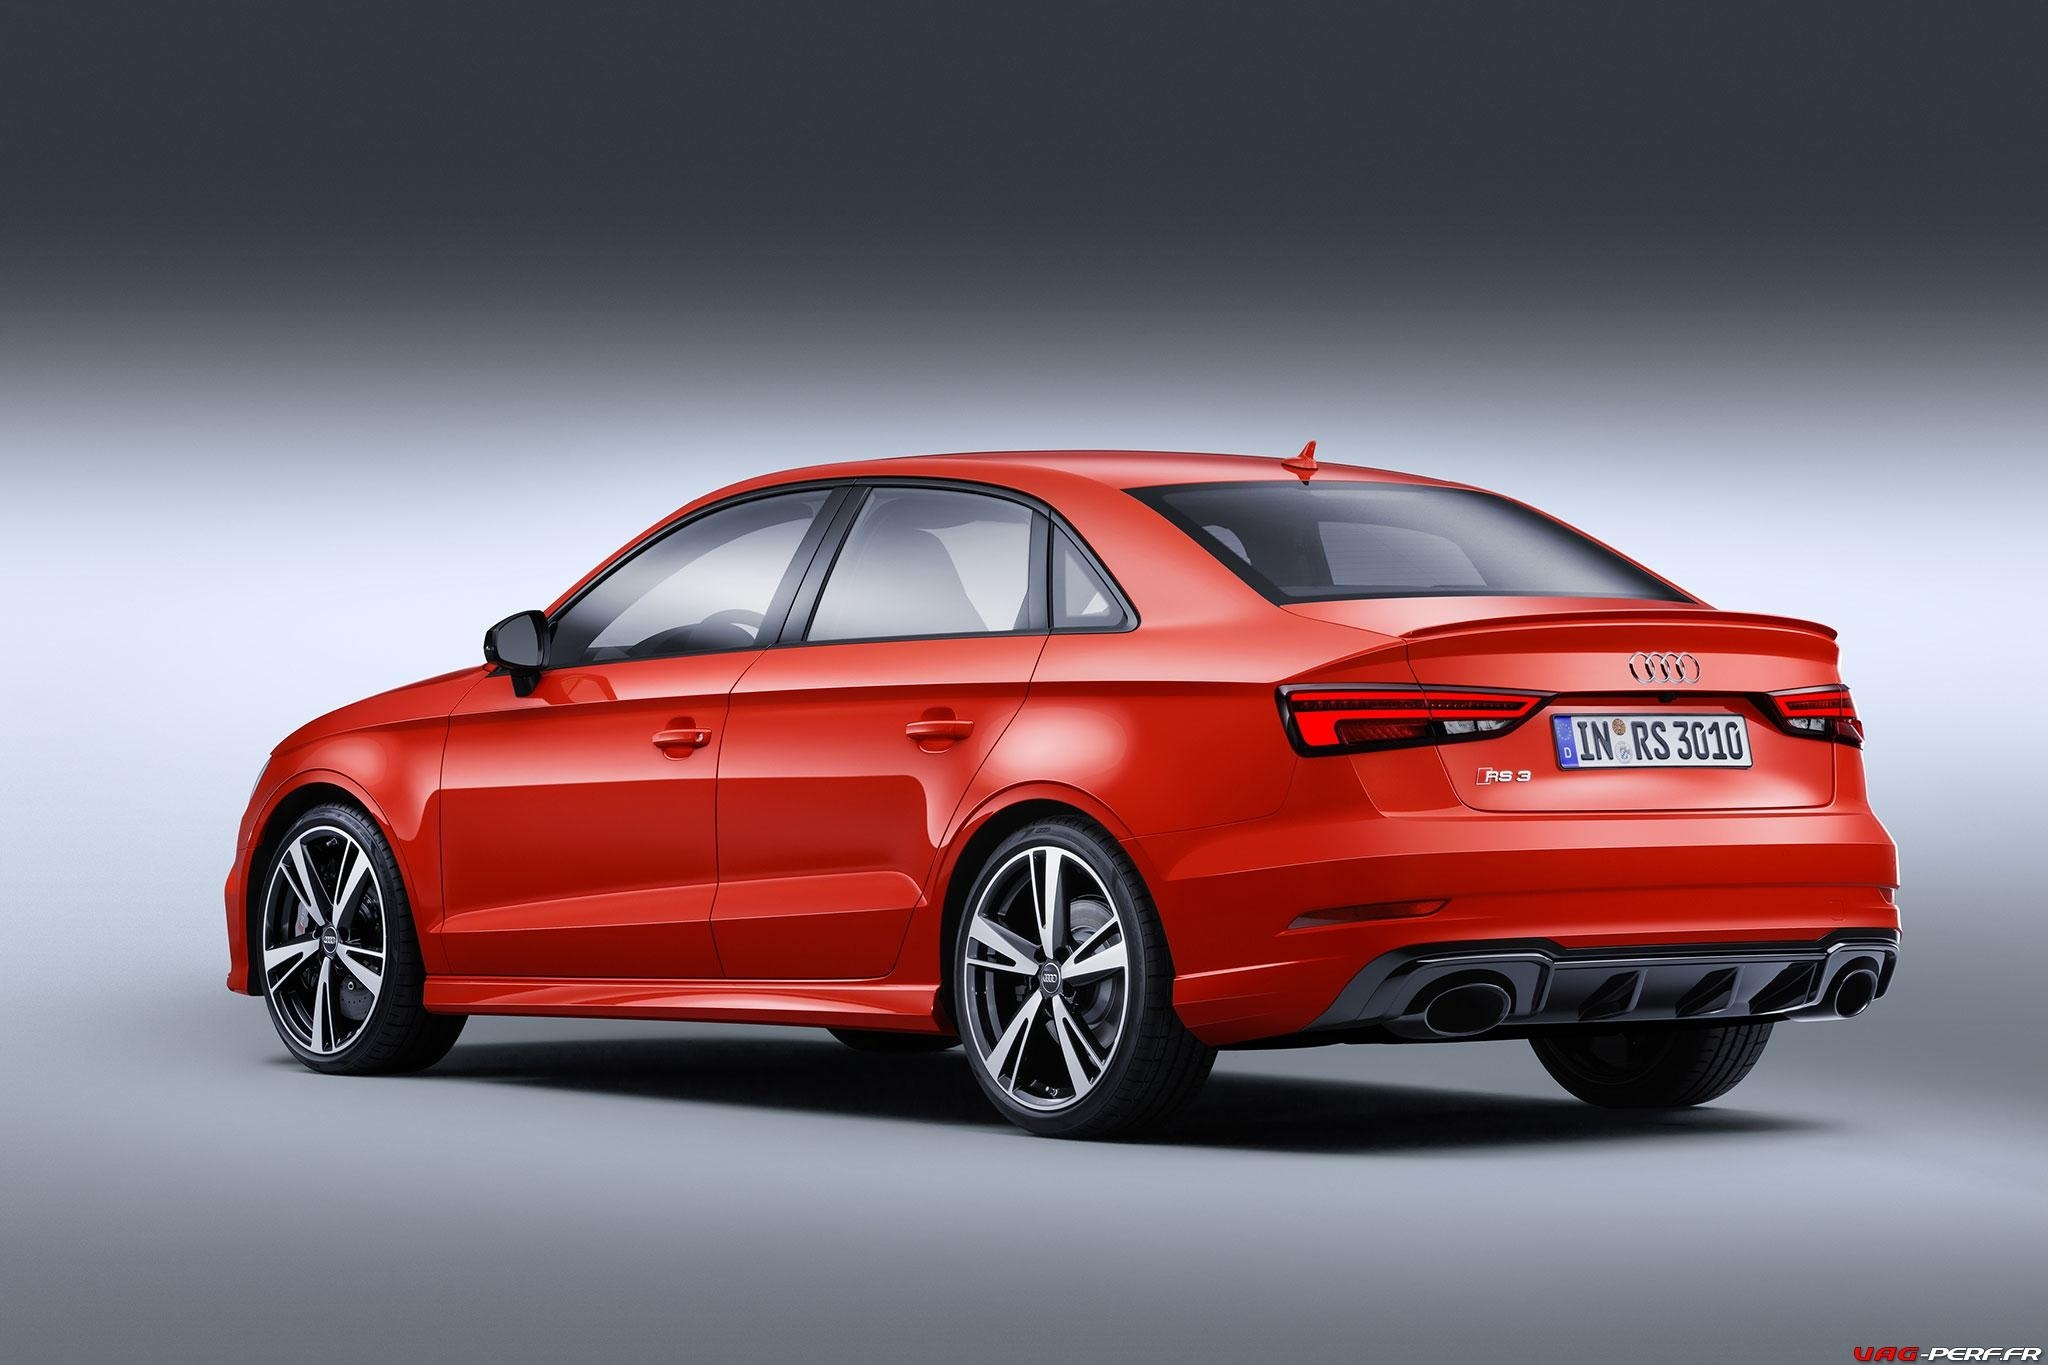 2016_Audi-RS3-Sedan-Officiel_06